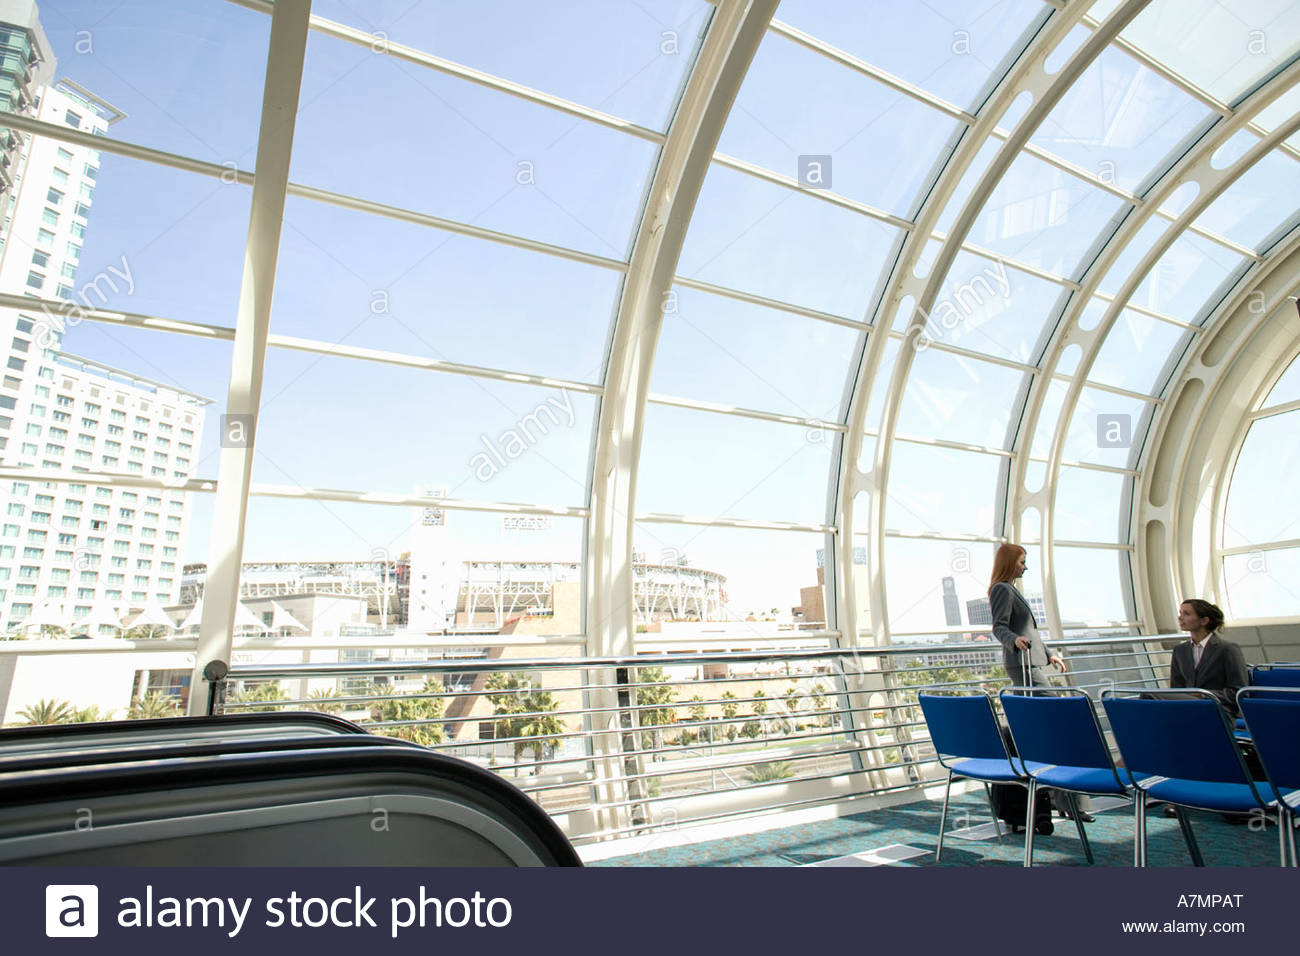 Two businesswomen waiting in airport departure lounge near escalator side view - Stock Image